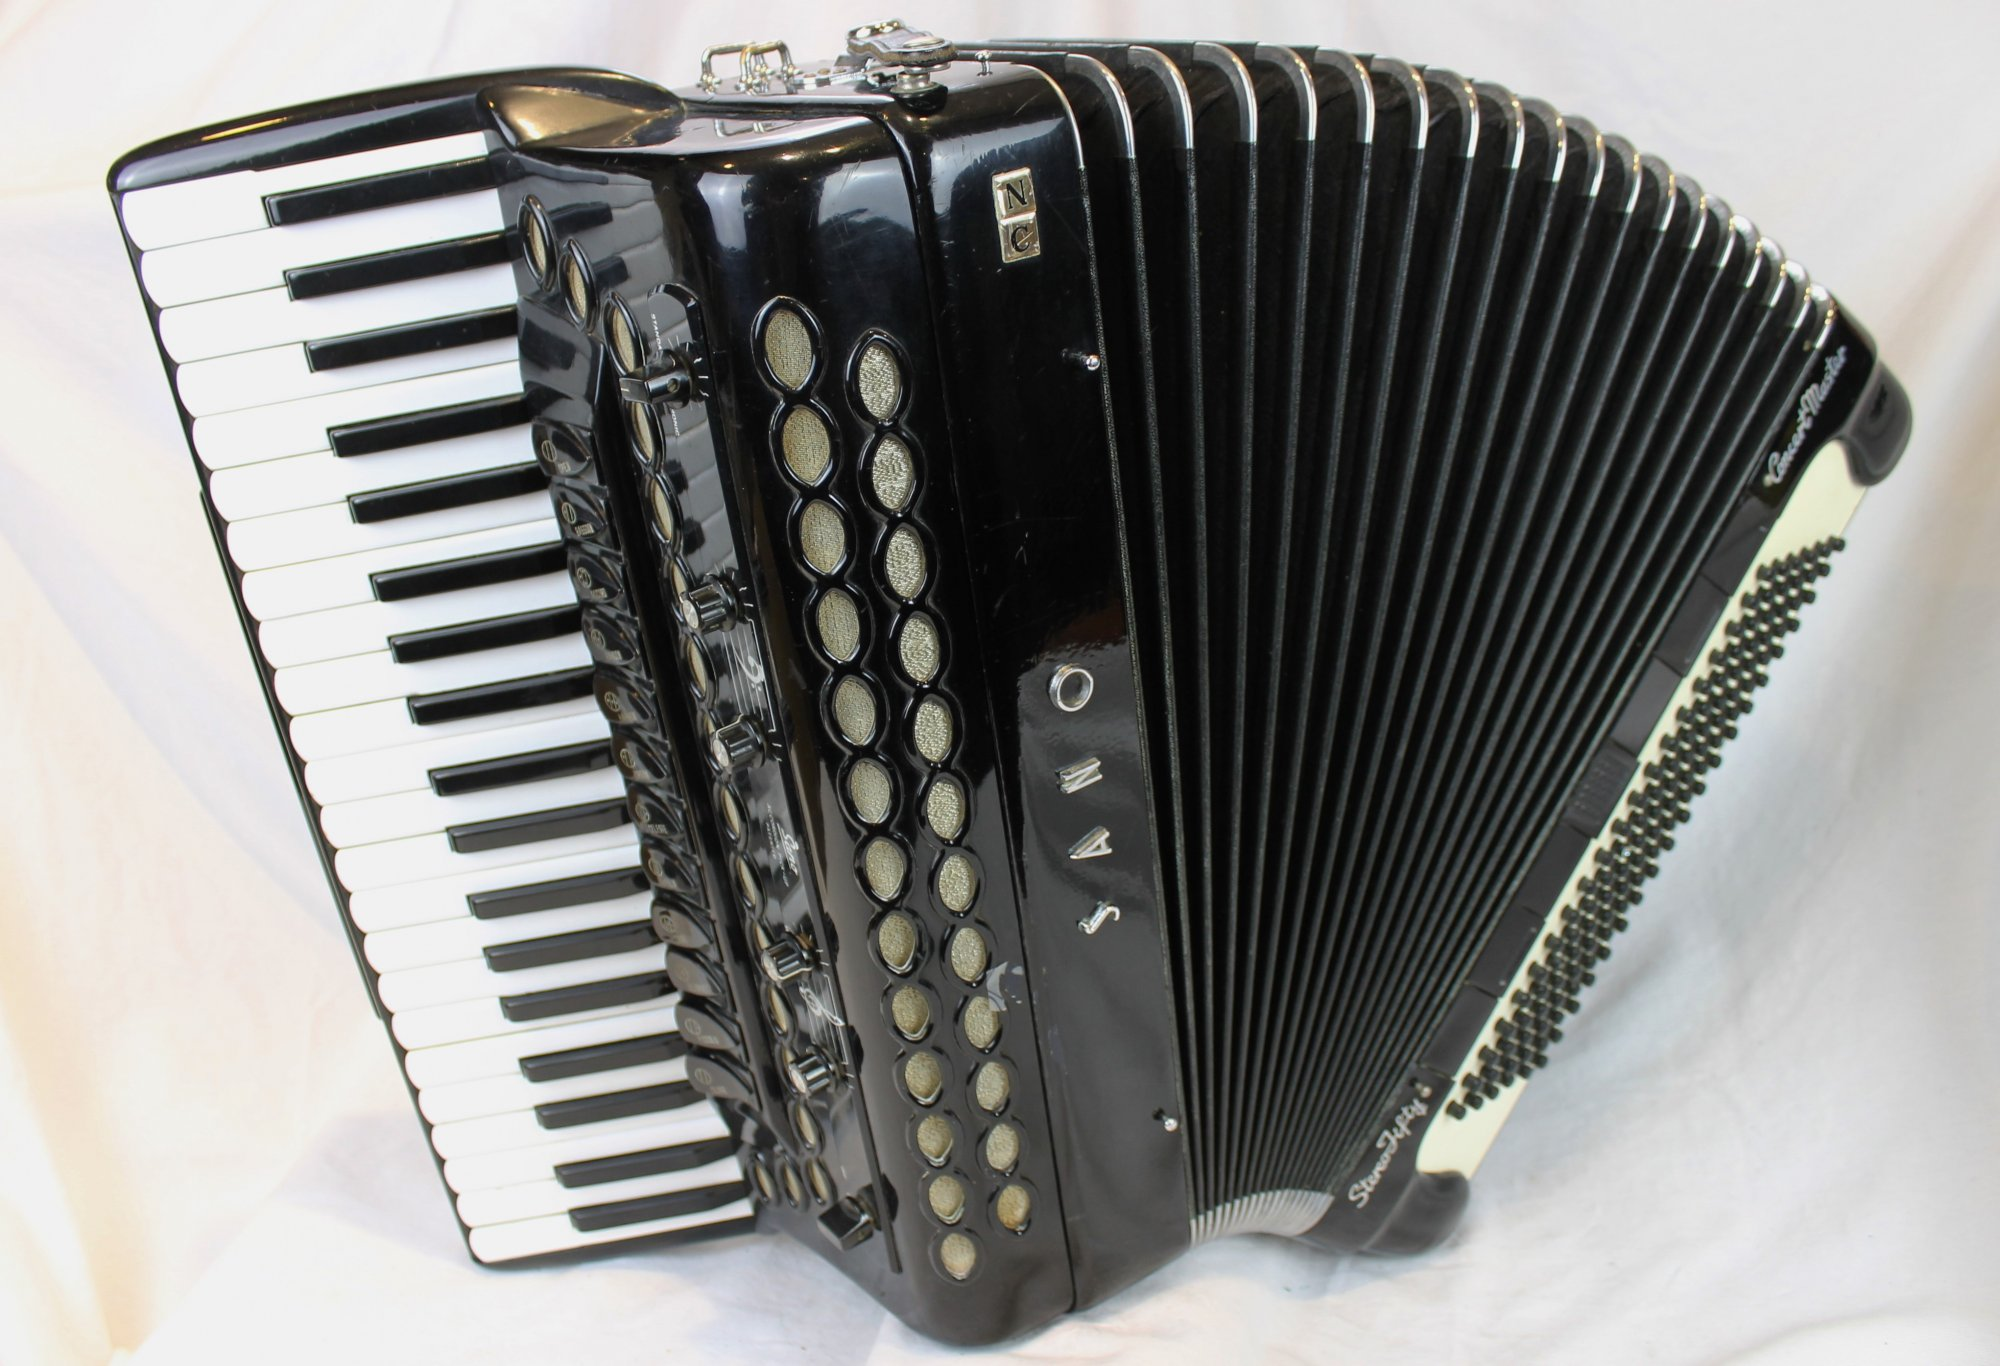 4211 - Black Sano Stereo Fifty Concert Master Piano Accordion LMMH 41 120